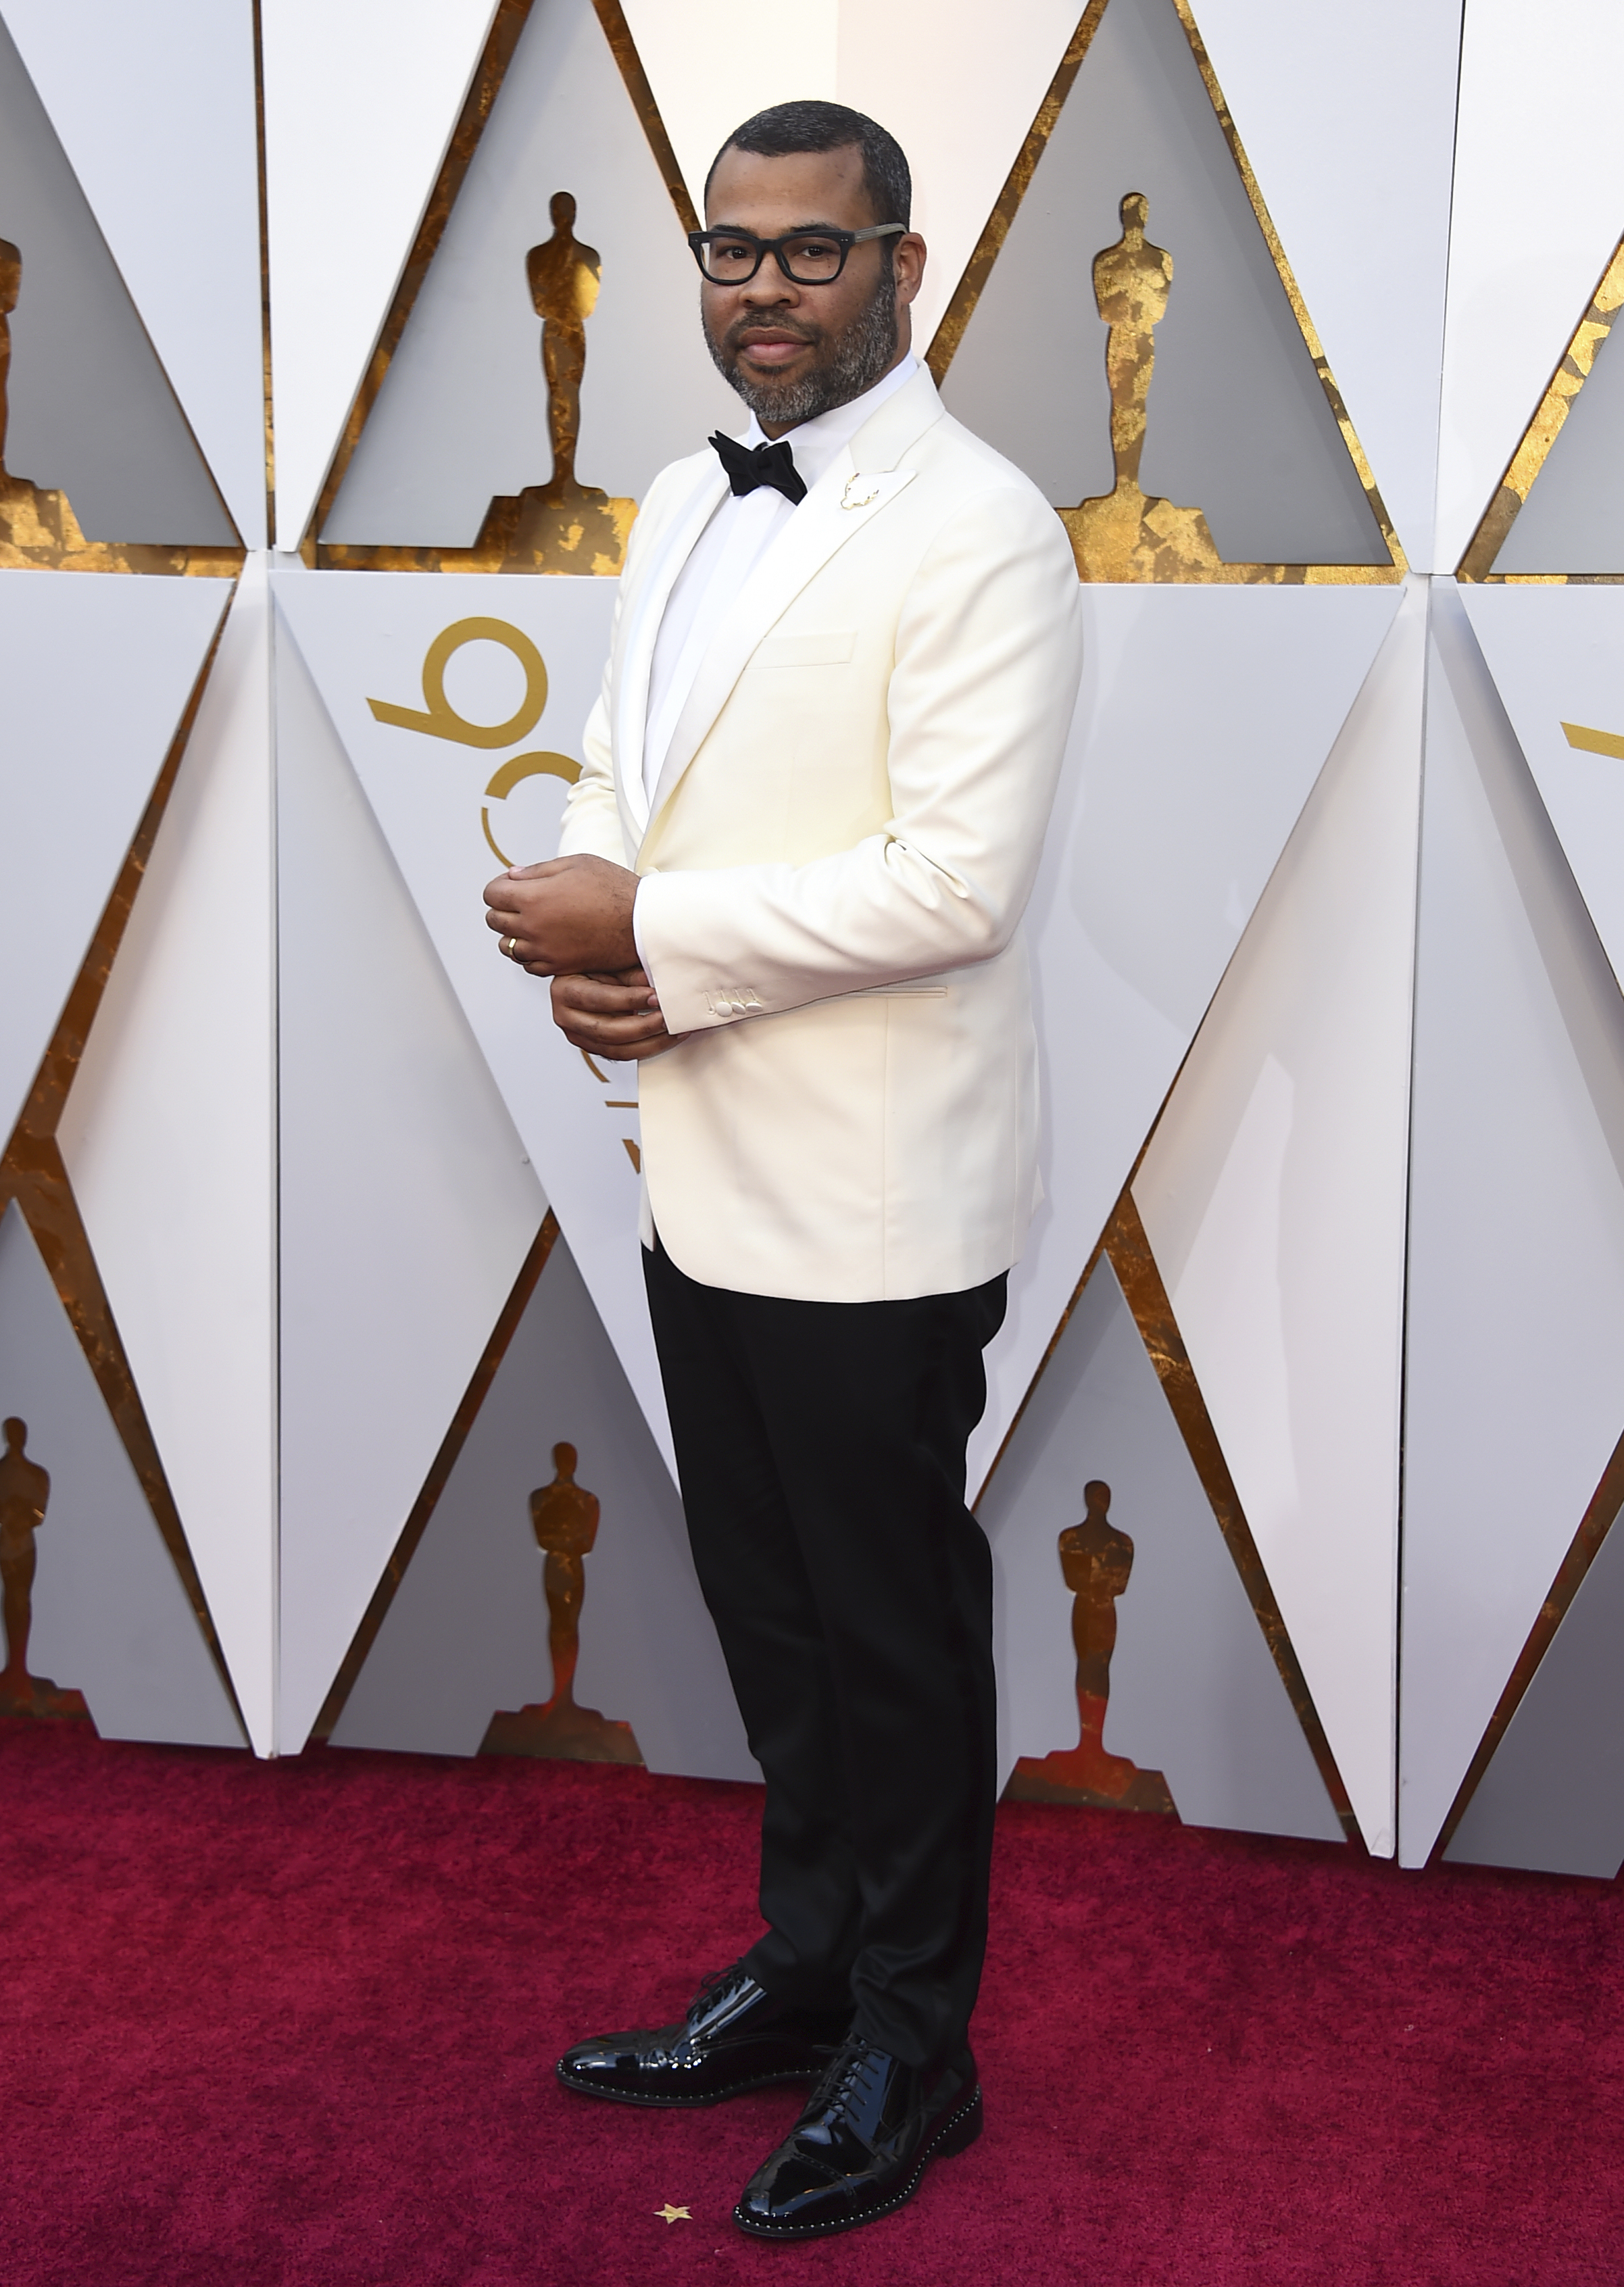 <div class='meta'><div class='origin-logo' data-origin='none'></div><span class='caption-text' data-credit='Jordan Strauss/Invision/AP'>Jordan Peele, nominated both for writing and directing ''Get Out,'' arrives at the Oscars on Sunday, March 4, 2018, at the Dolby Theatre in Los Angeles.</span></div>